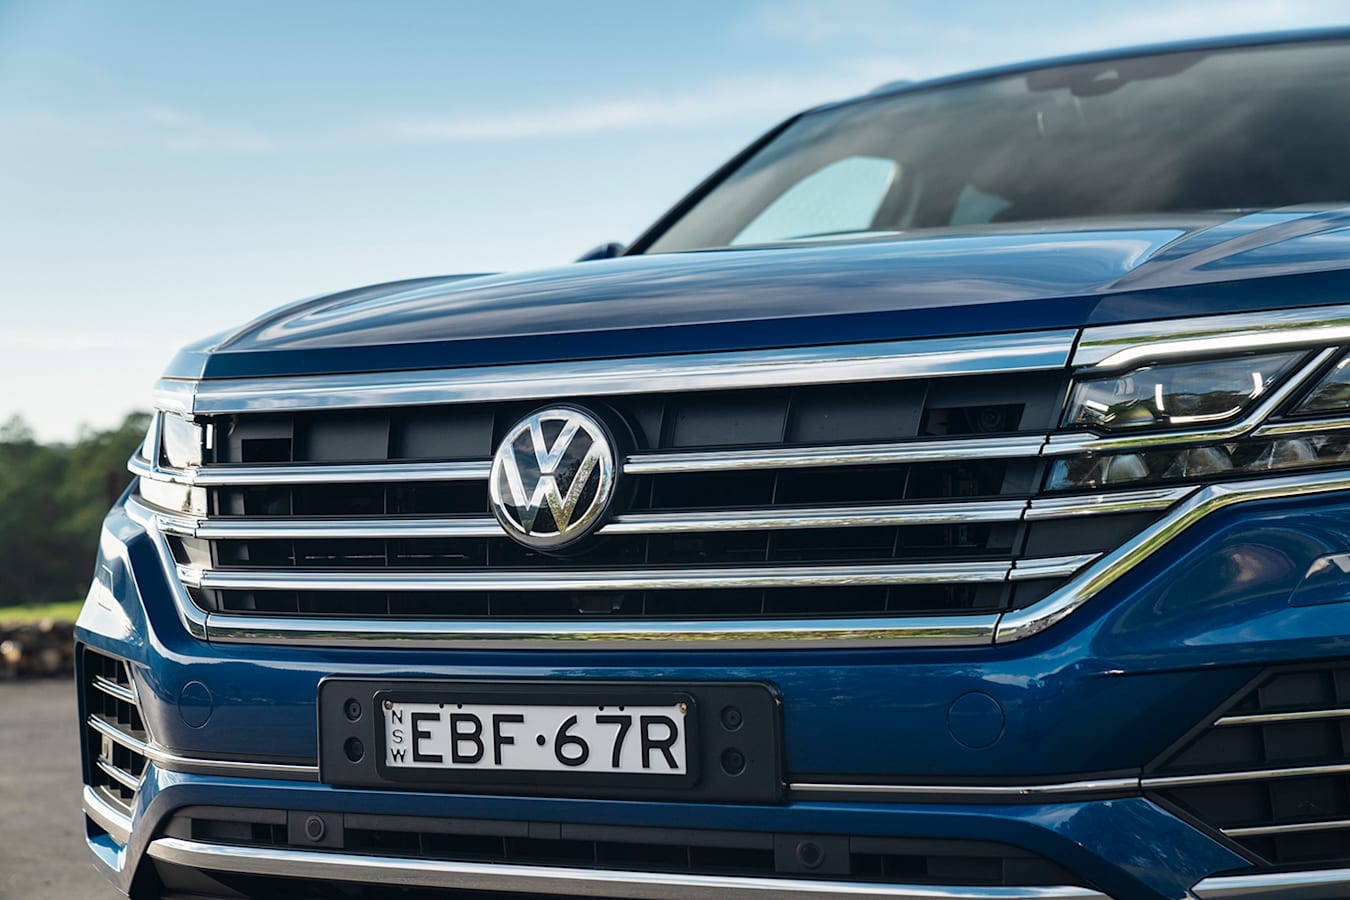 2019 Volkswagen Touareg Launchedition Grille Jpg